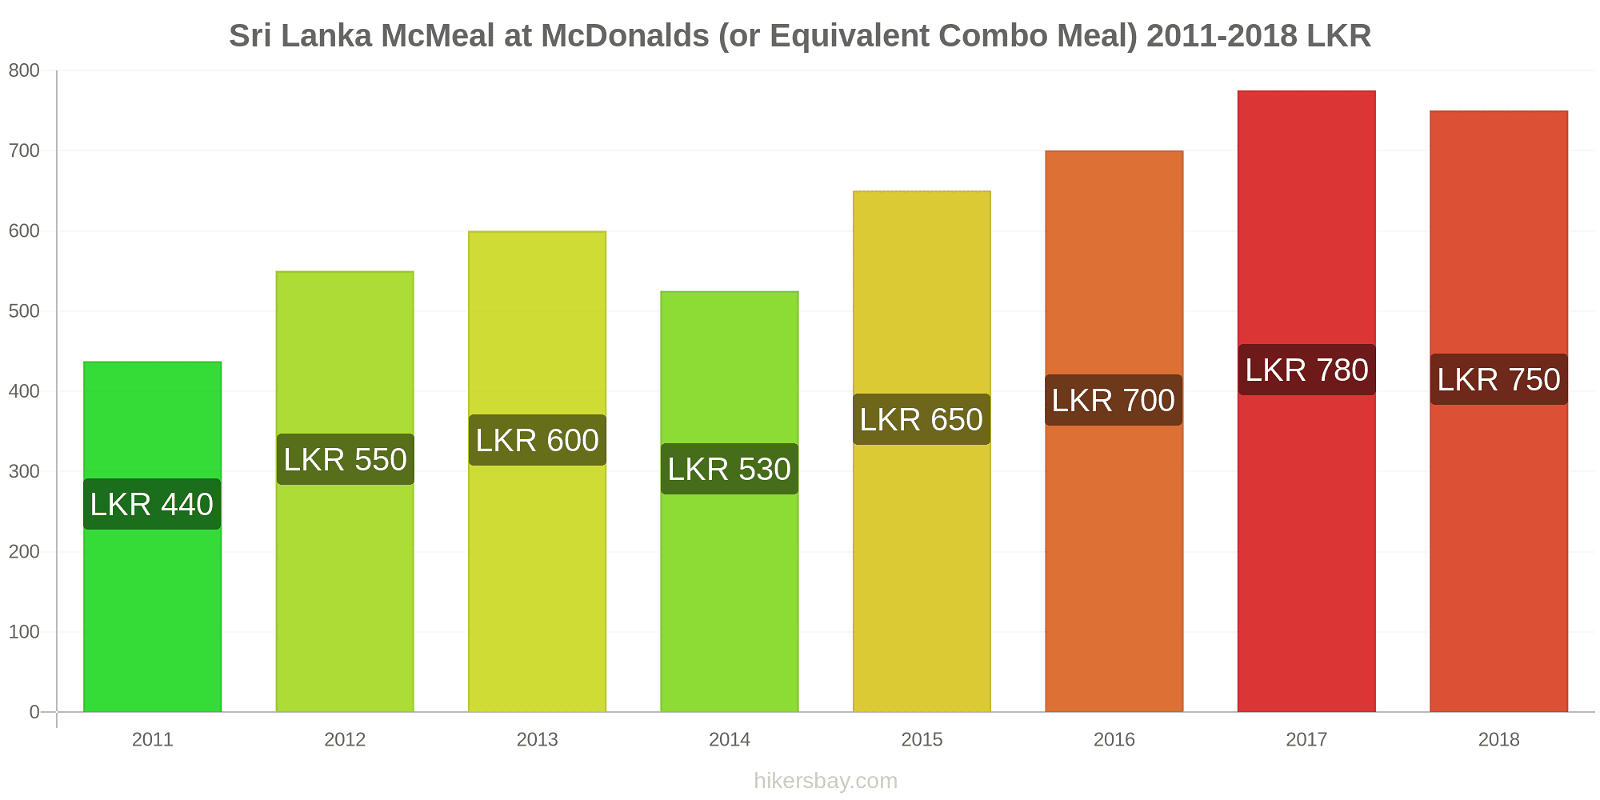 Sri Lanka price changes McMeal at McDonalds (or Equivalent Combo Meal) hikersbay.com